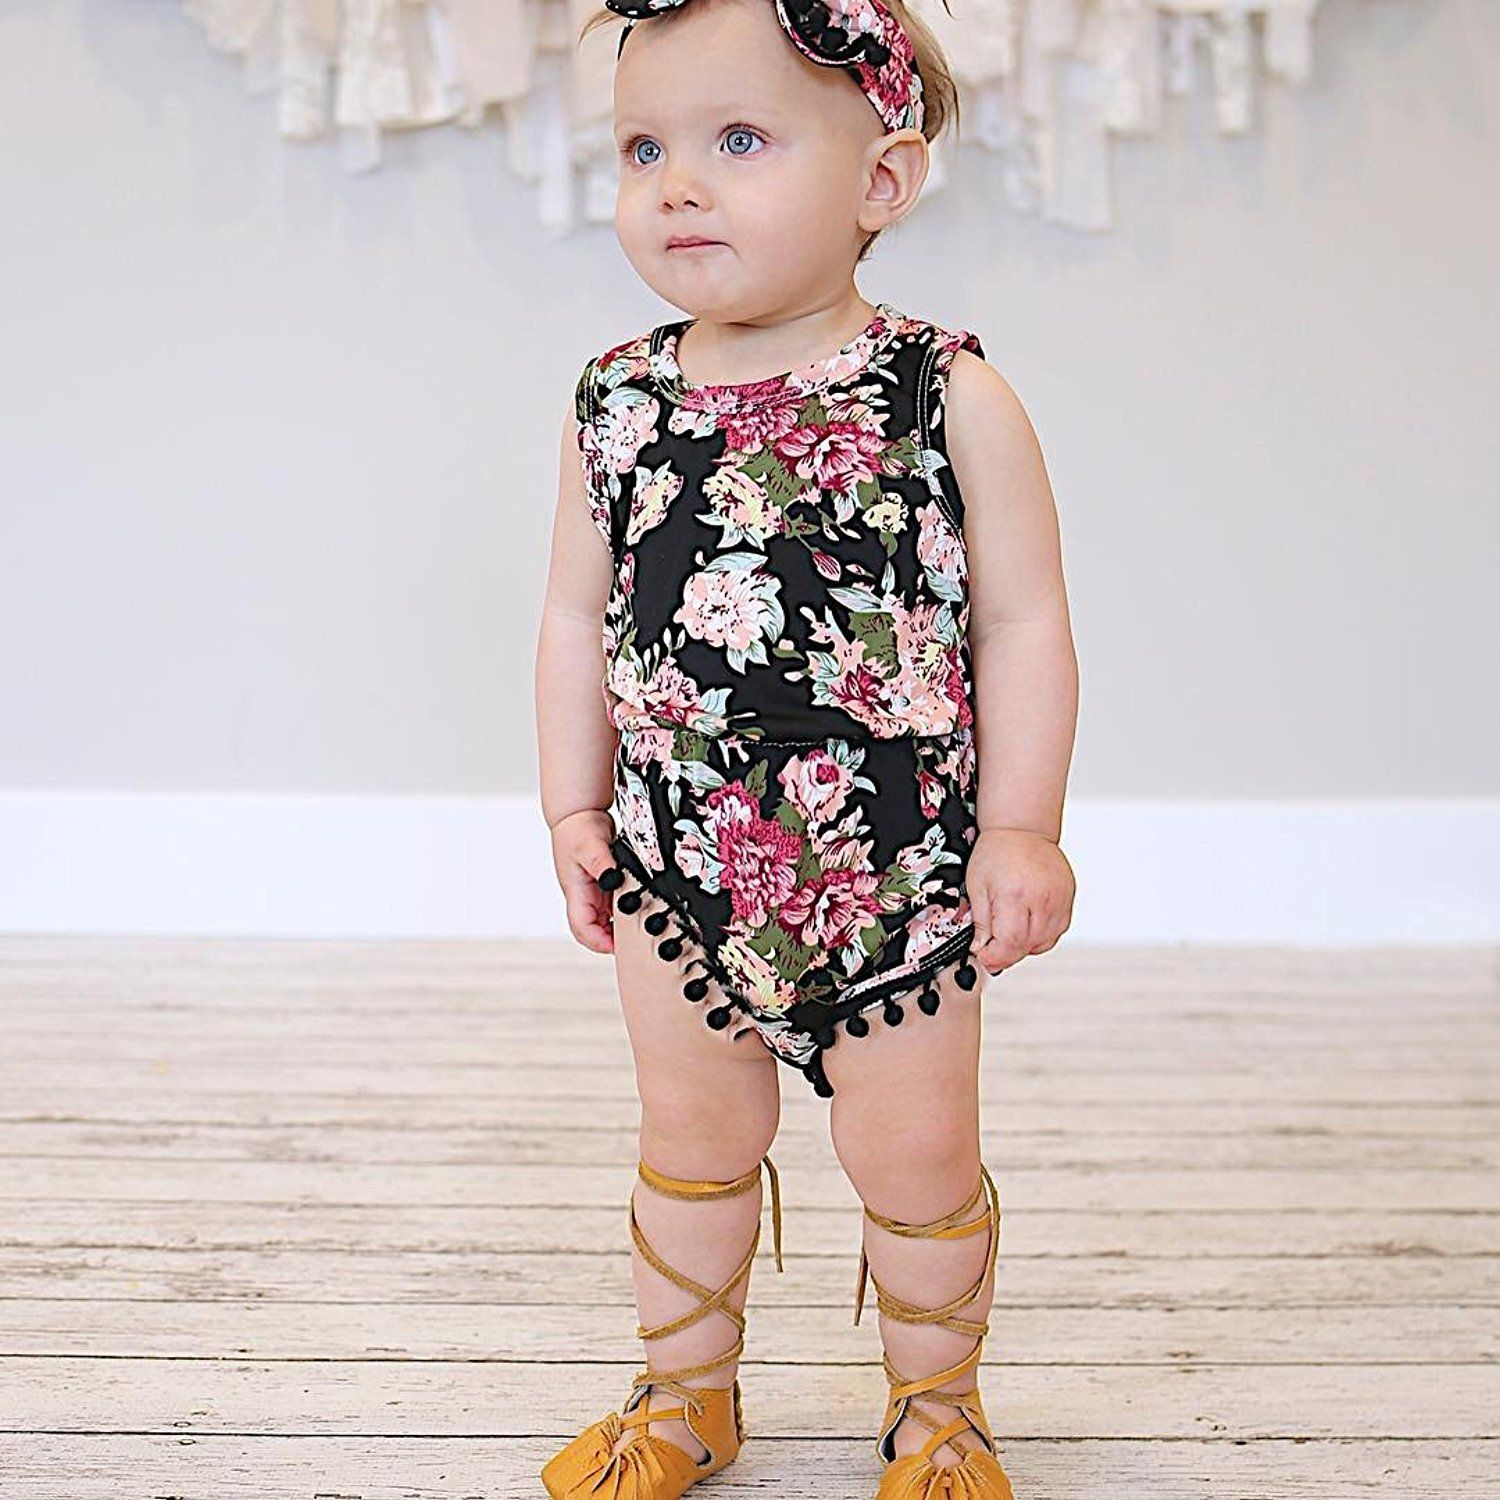 207c265e5 Amazon.com: Cute Adorable Floral Romper Baby Girls Sleeveless Tassel Romper  One-pieces +Headband Sunsuit Outfit Clothes (18-24 Months, Black): Clothing